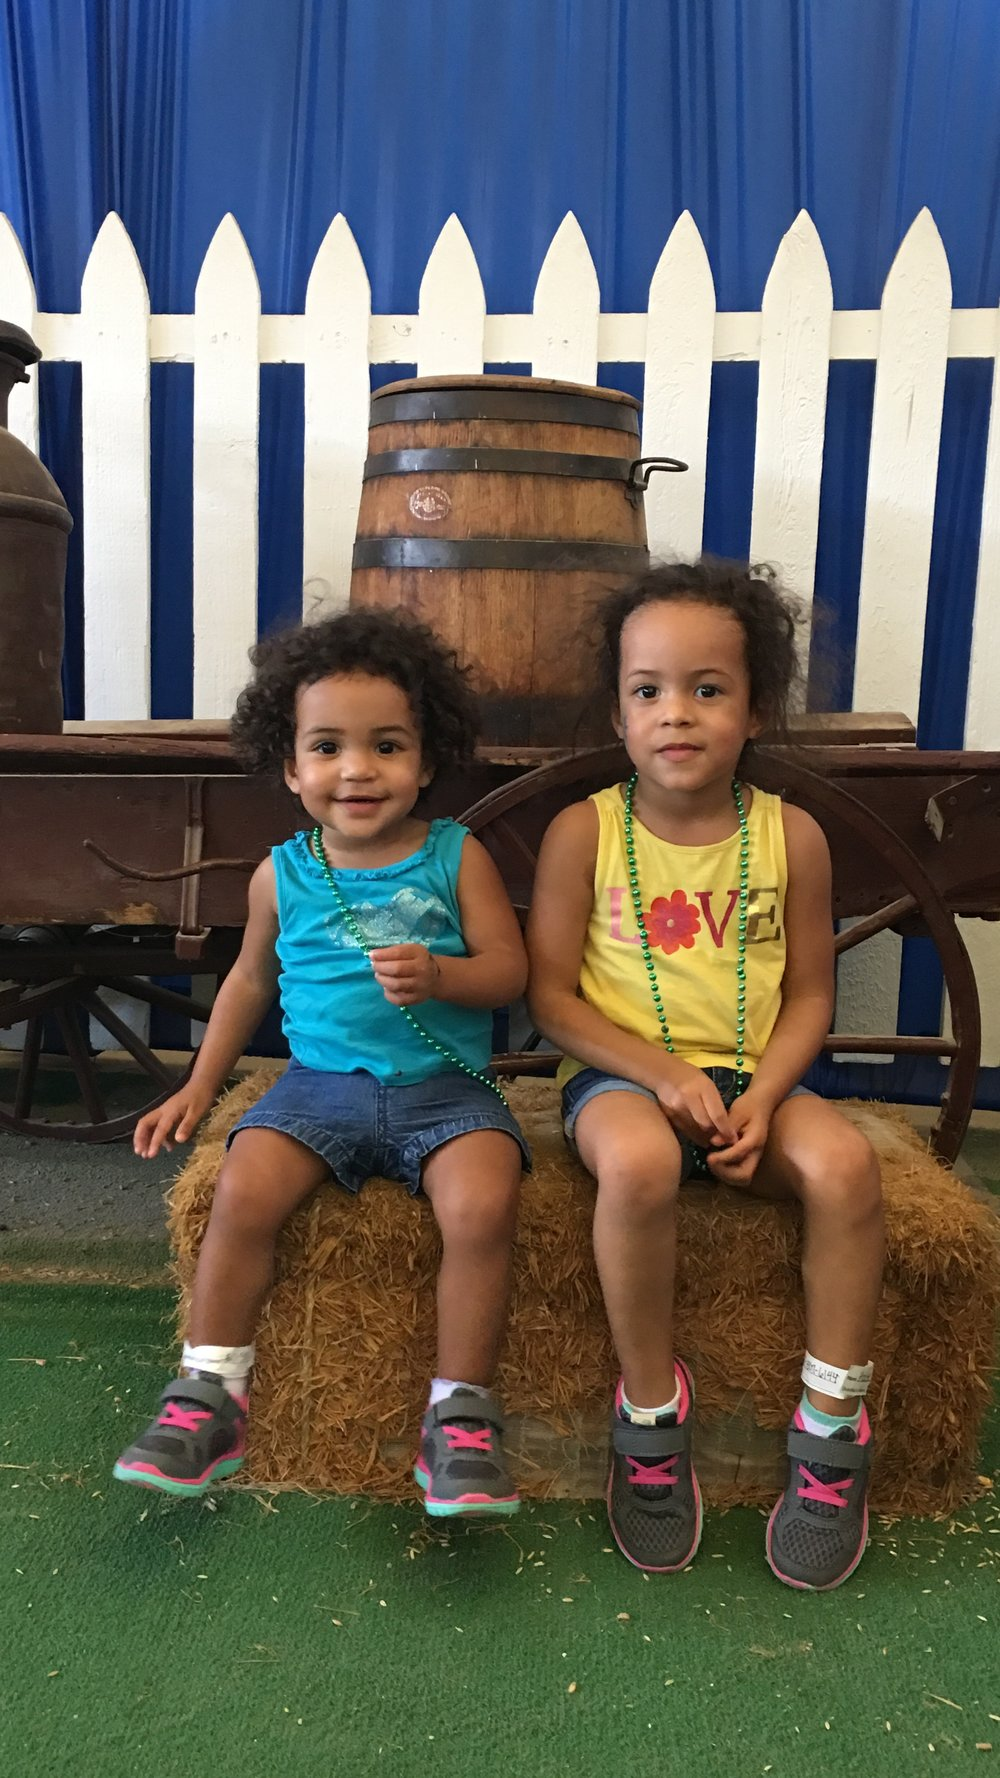 Kate (19 months) & Adde (3 years old) at the Texas State Fair!